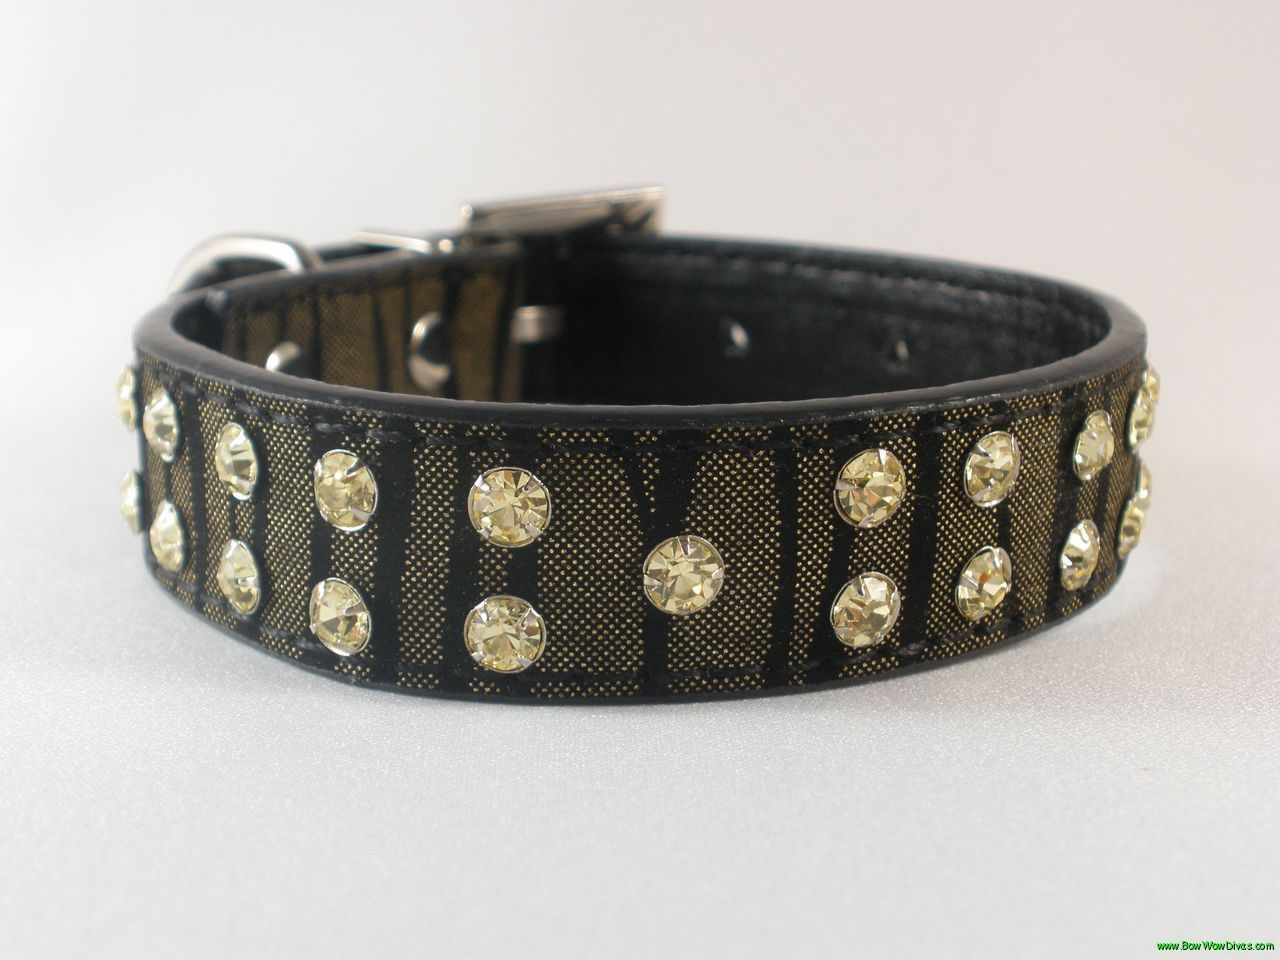 Black and Gold Zebra Leather Dog Collar with Rhinestones